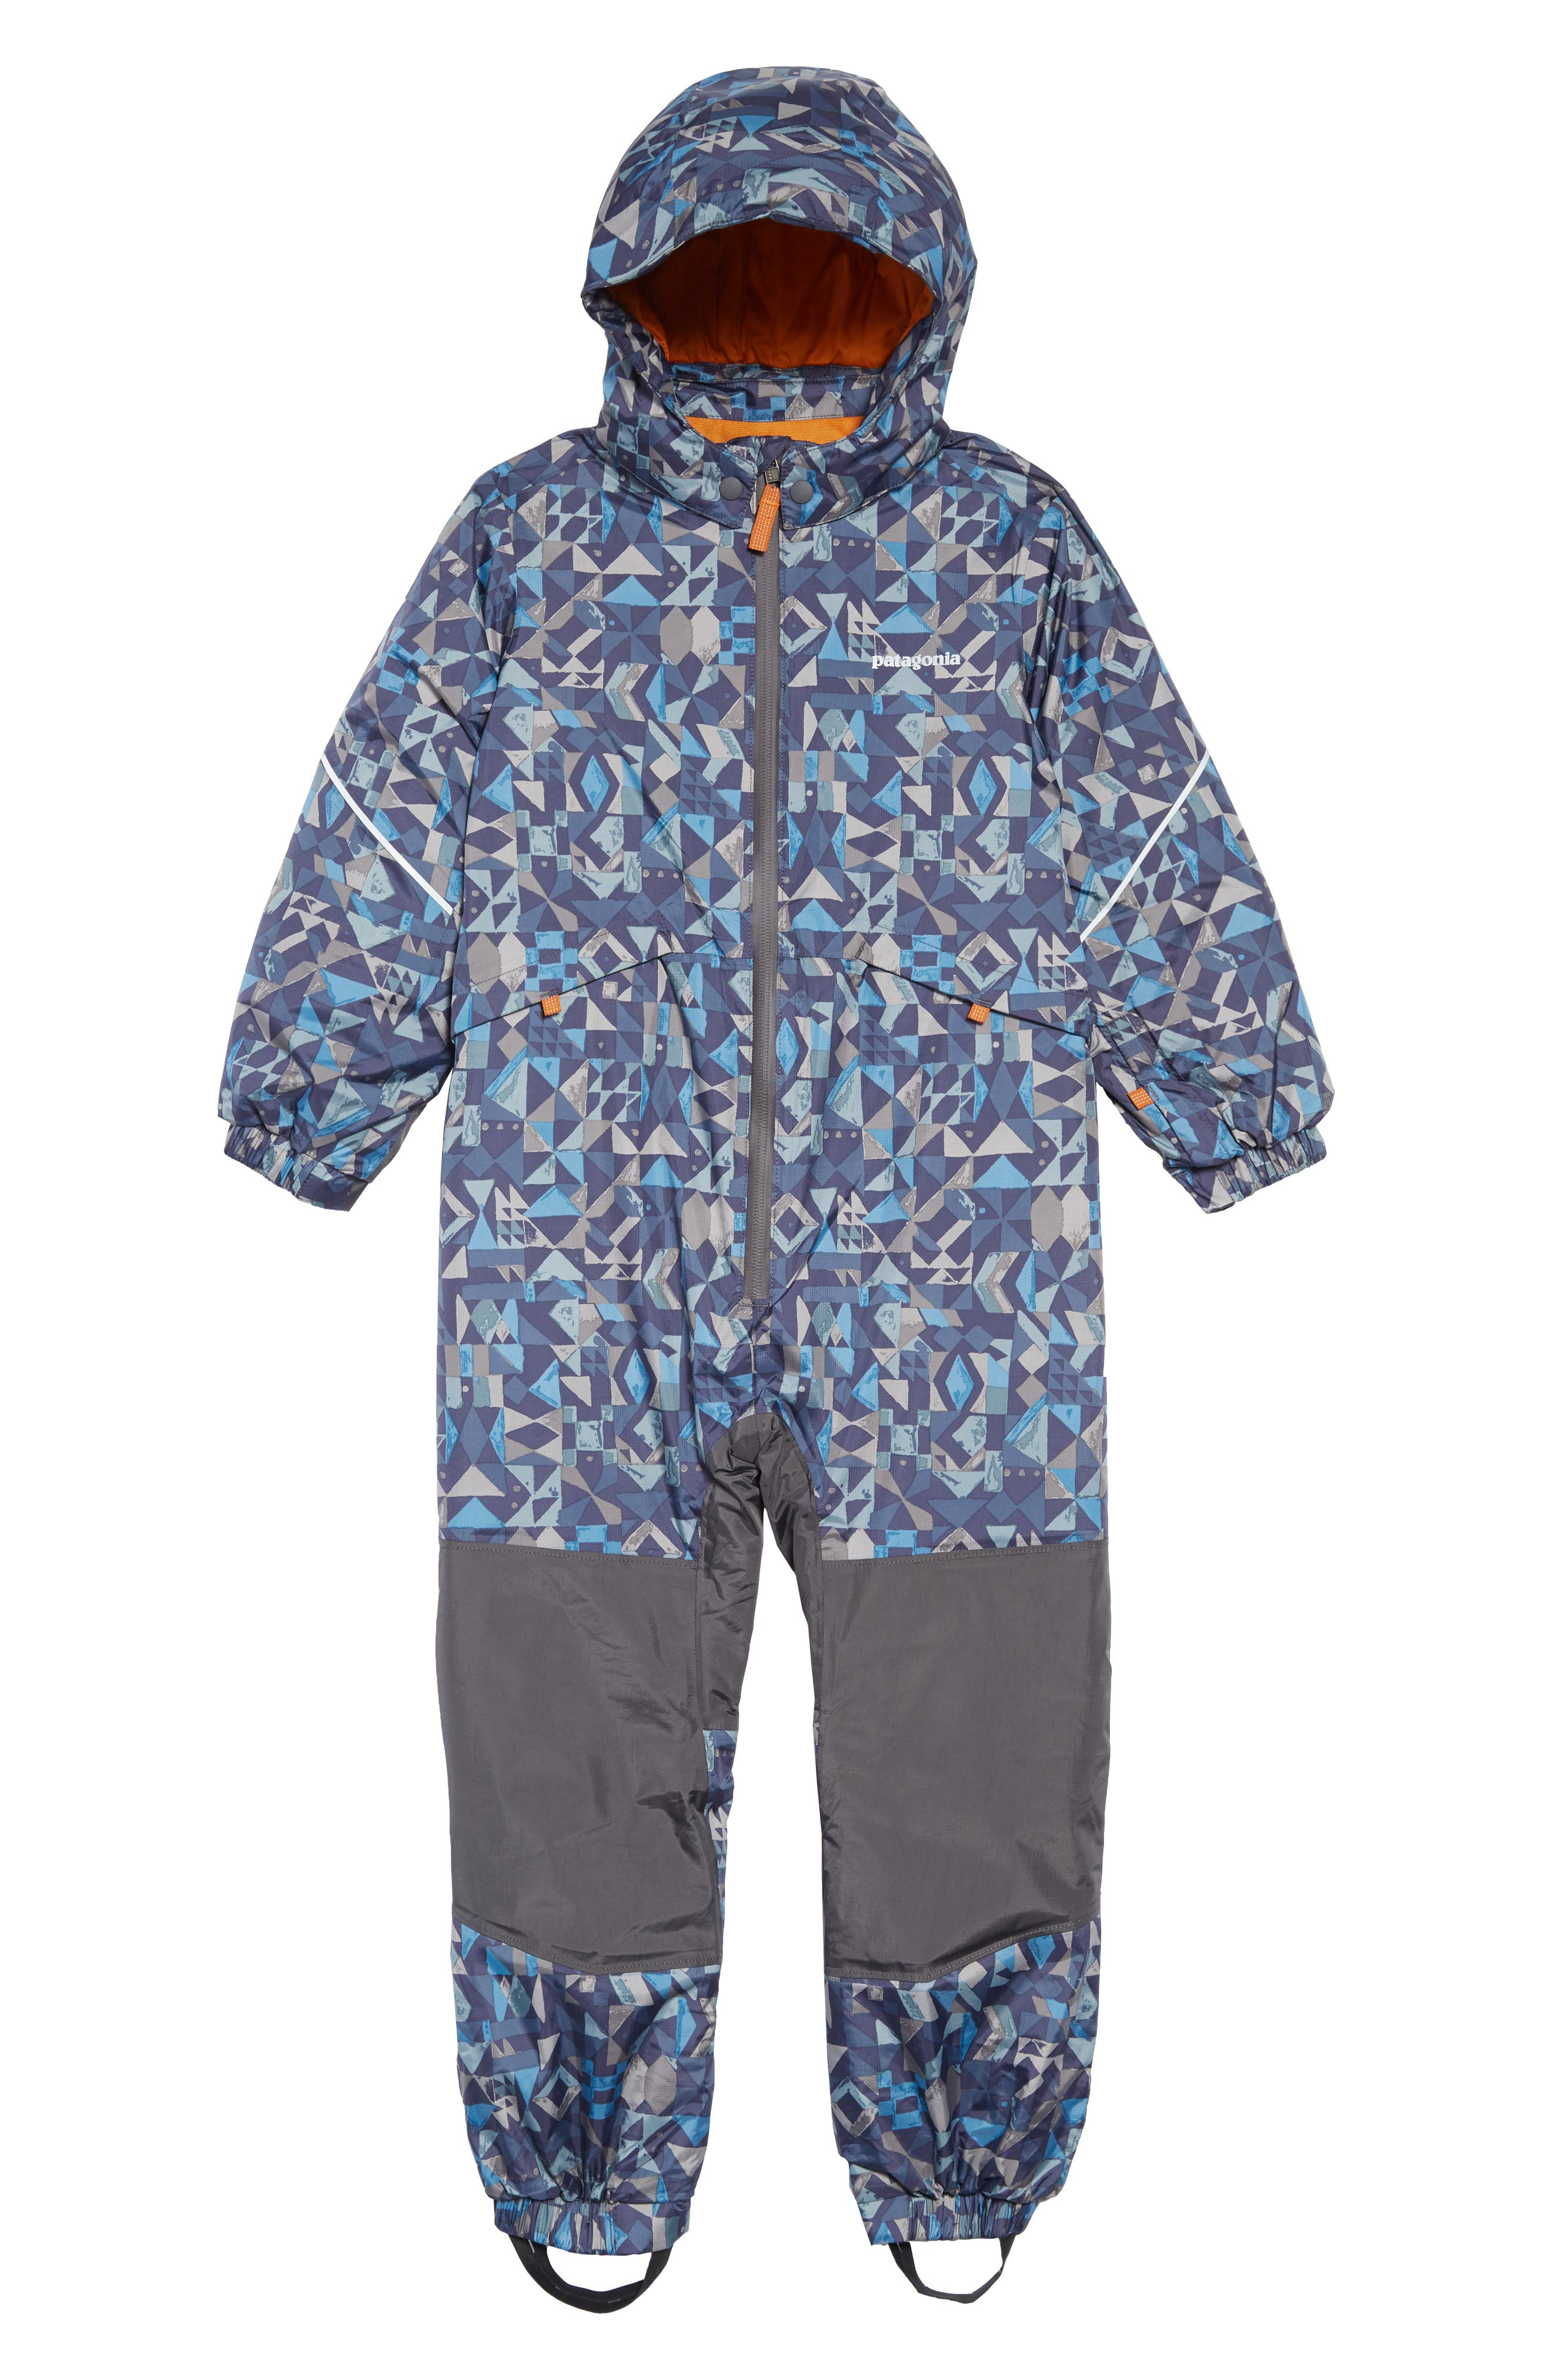 Snow Pile Waterproof Insulated One-Piece Snowsuit,                             Main thumbnail 1, color,                             403